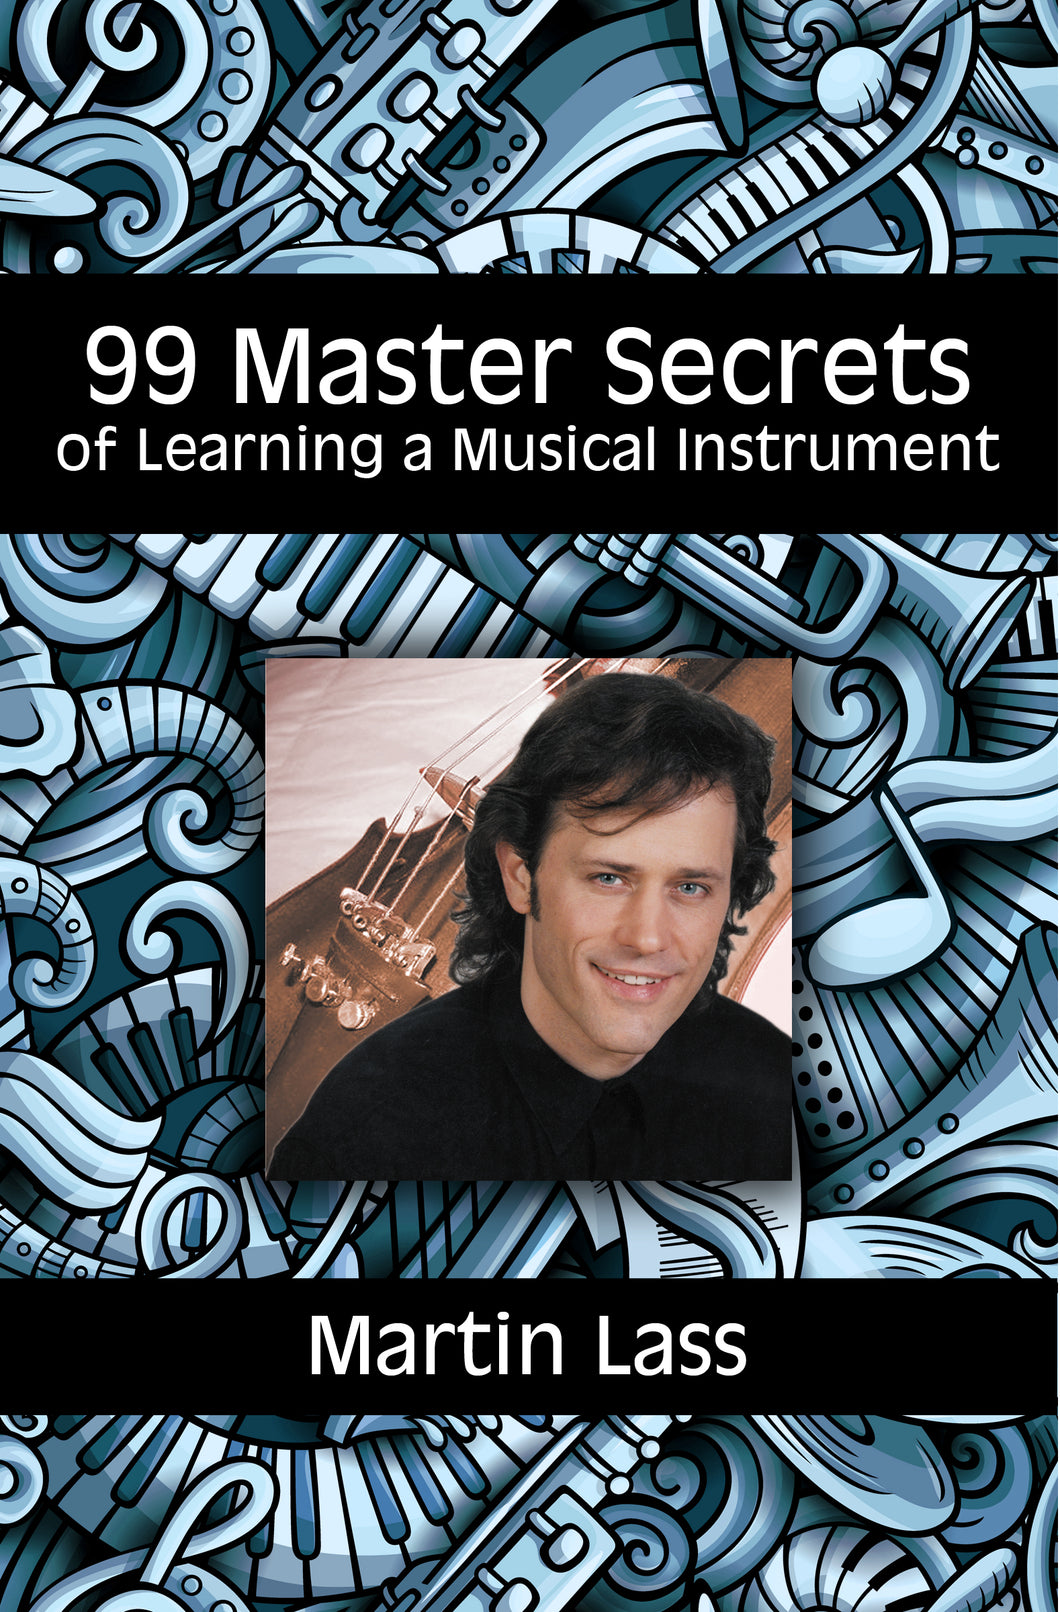 99 Master Secrets of Learning a Musical Instrument